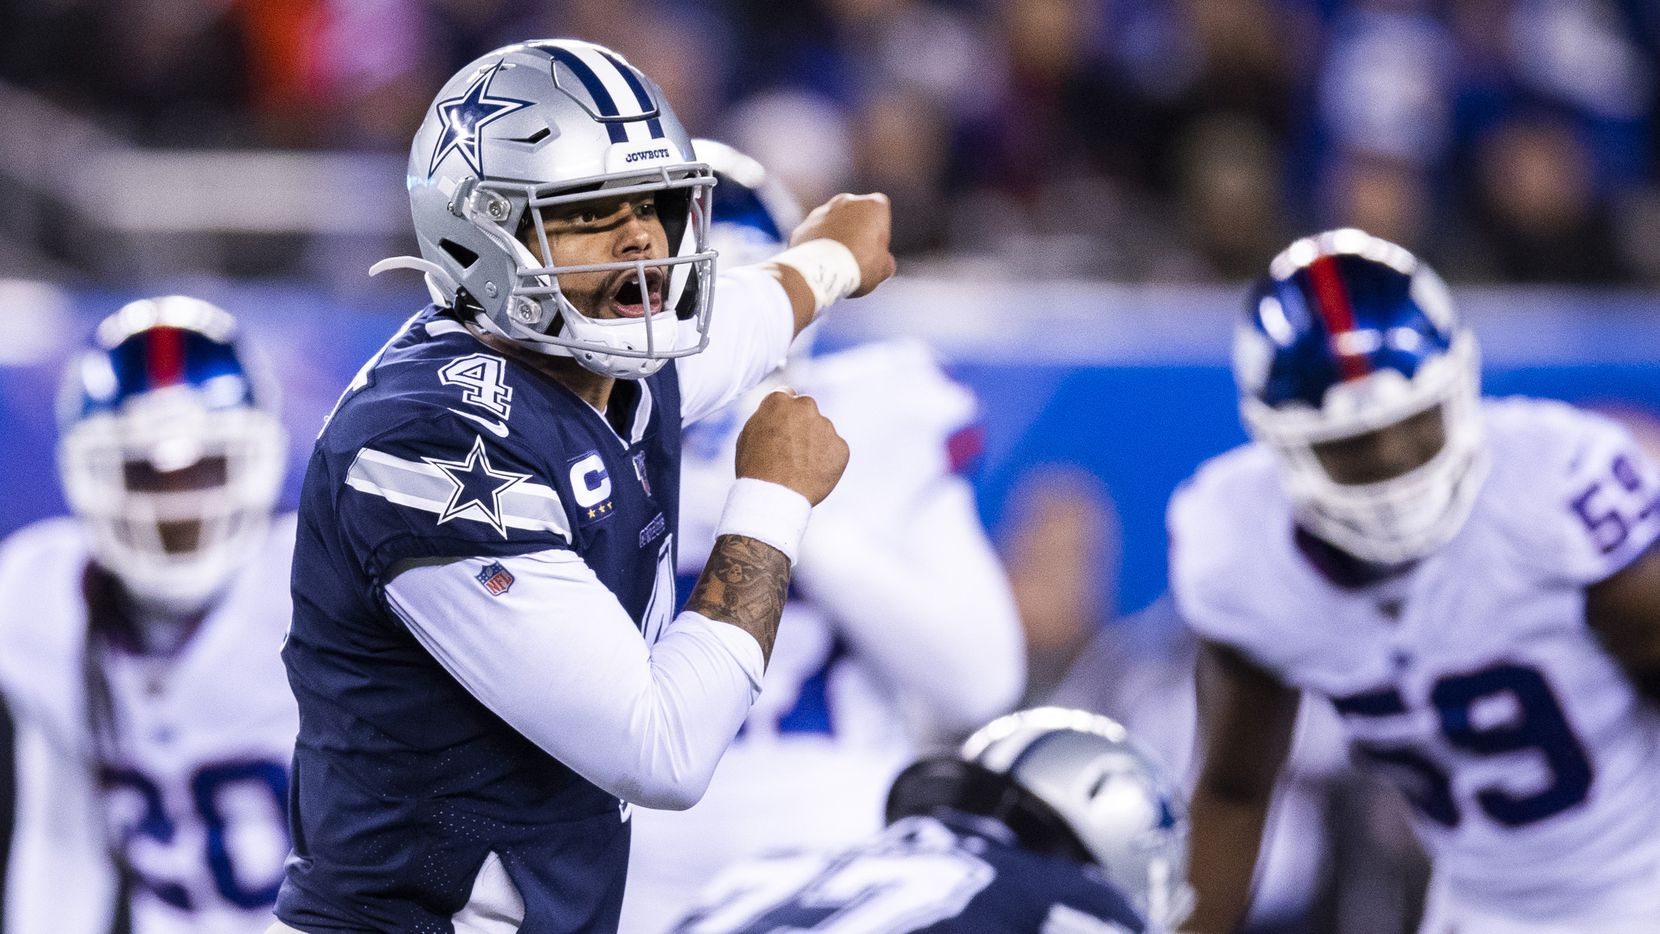 Dallas Cowboys quarterback Dak Prescott (4) shouts a play during the fourth quarter of an NFL game between the Dallas Cowboys and the New York Giants on Monday, November 4, 2019 at MetLife Stadium in East Rutherford, New Jersey.